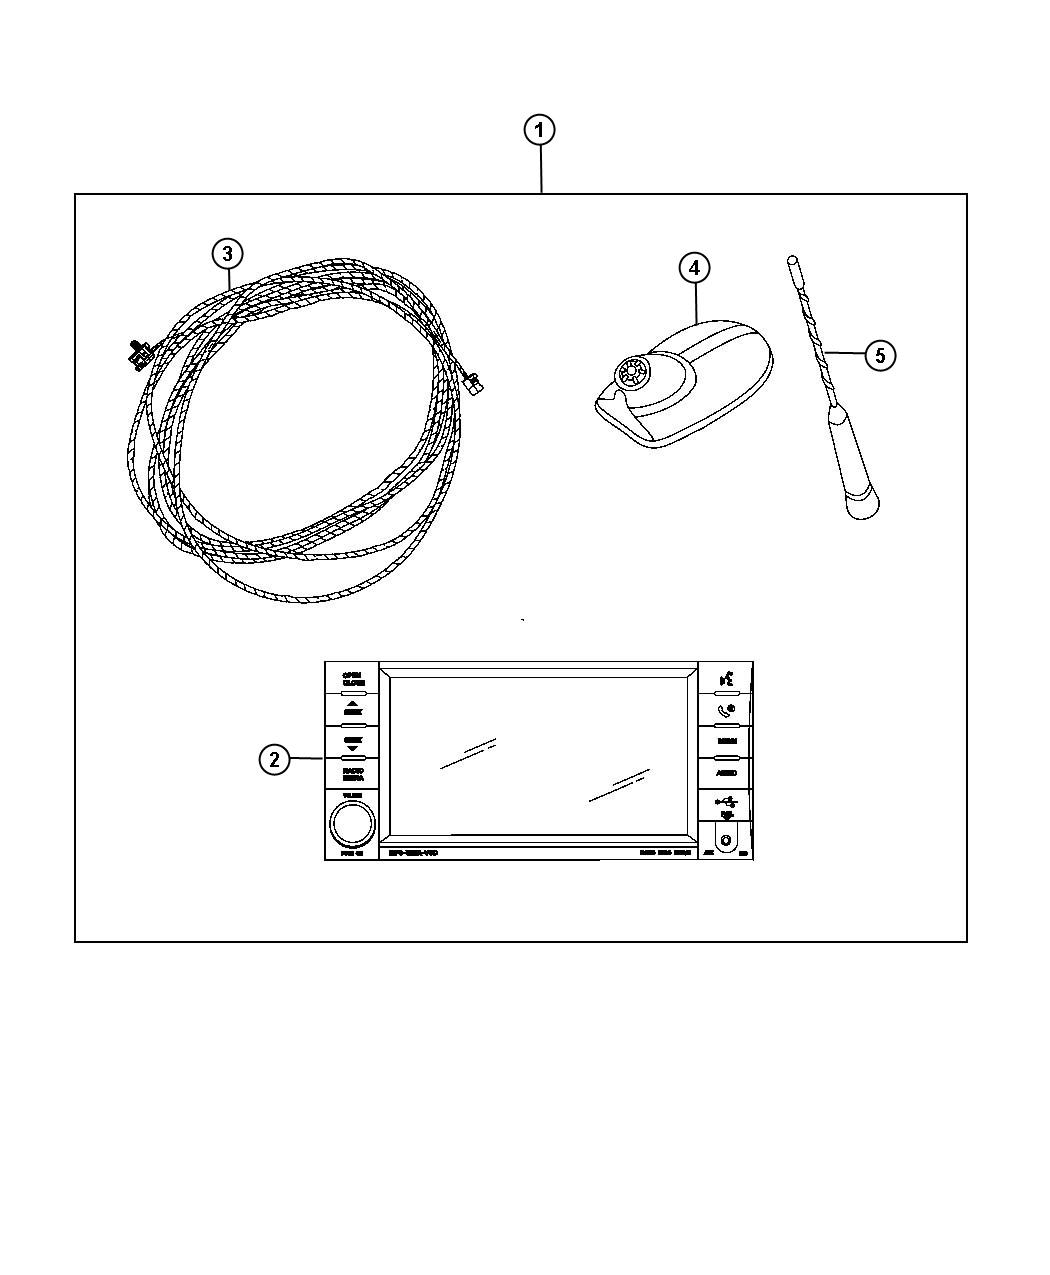 Jeep Grand Cherokee Antenna Used For Base Cable And